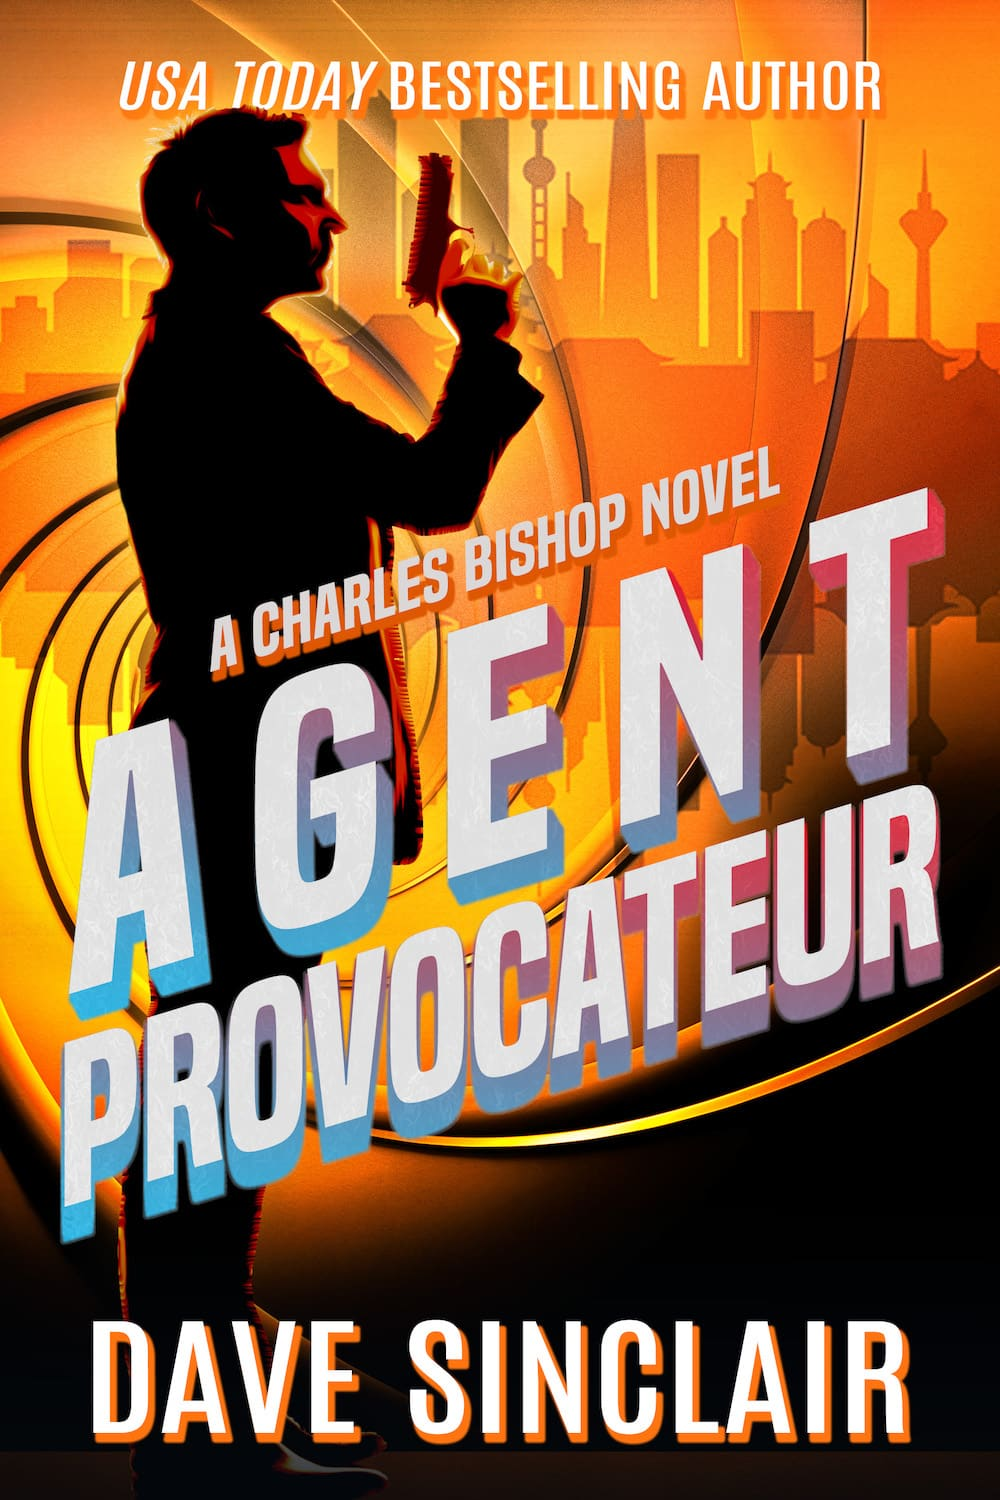 Agent Provocateur (Charles Bishop #2)